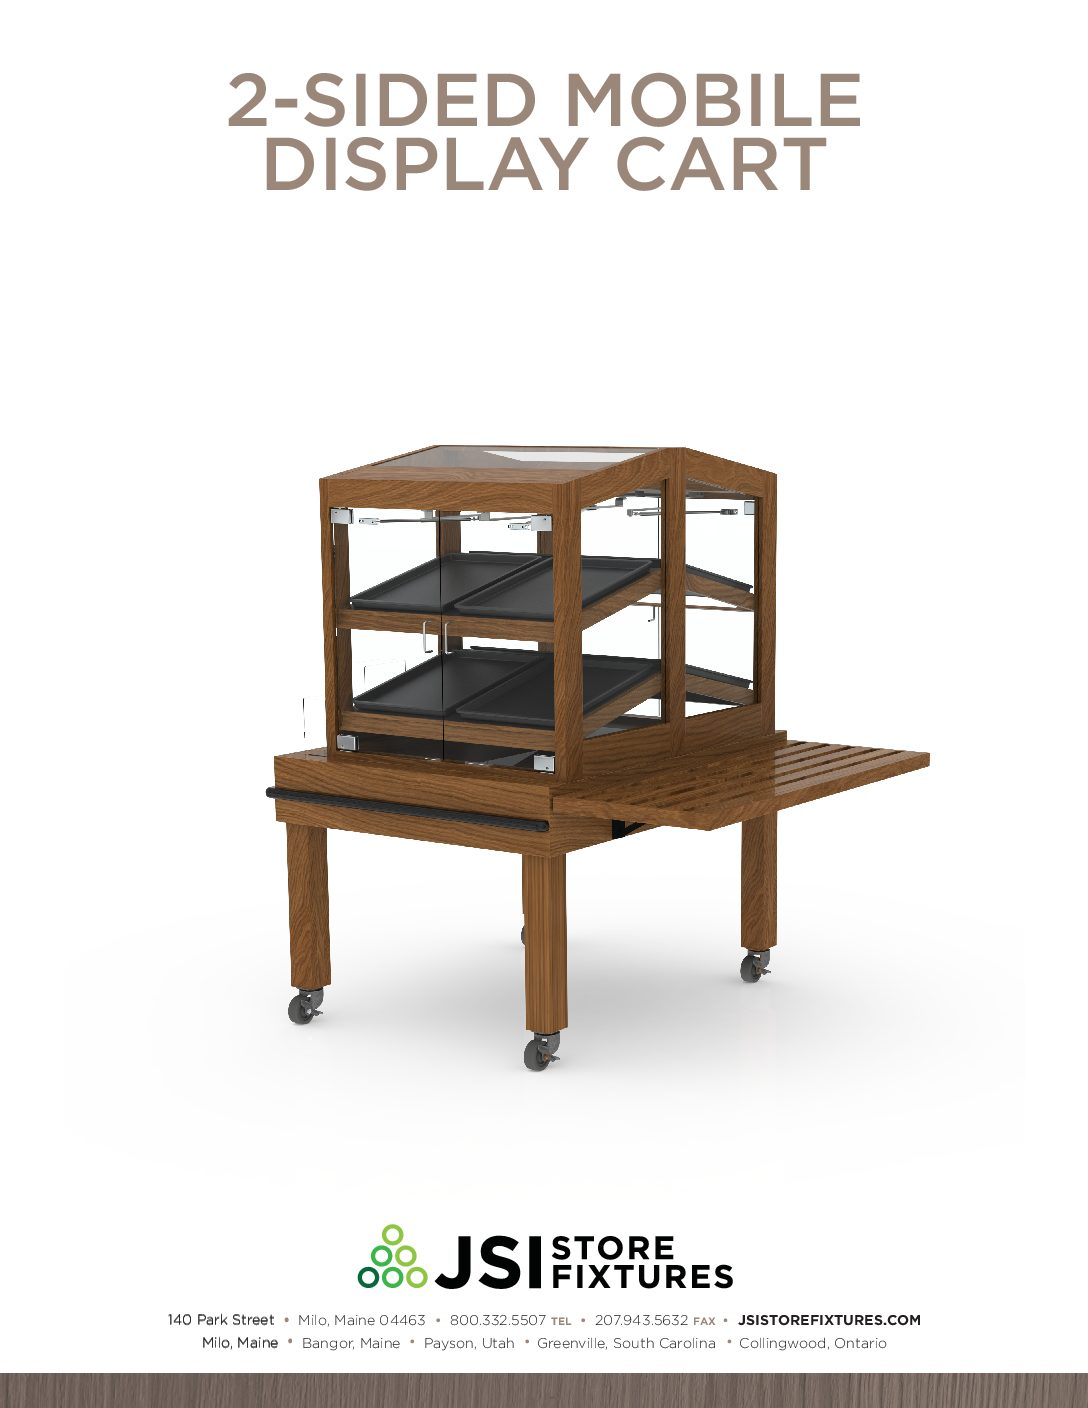 2-Sided Mobile Display Cart Spec Sheet